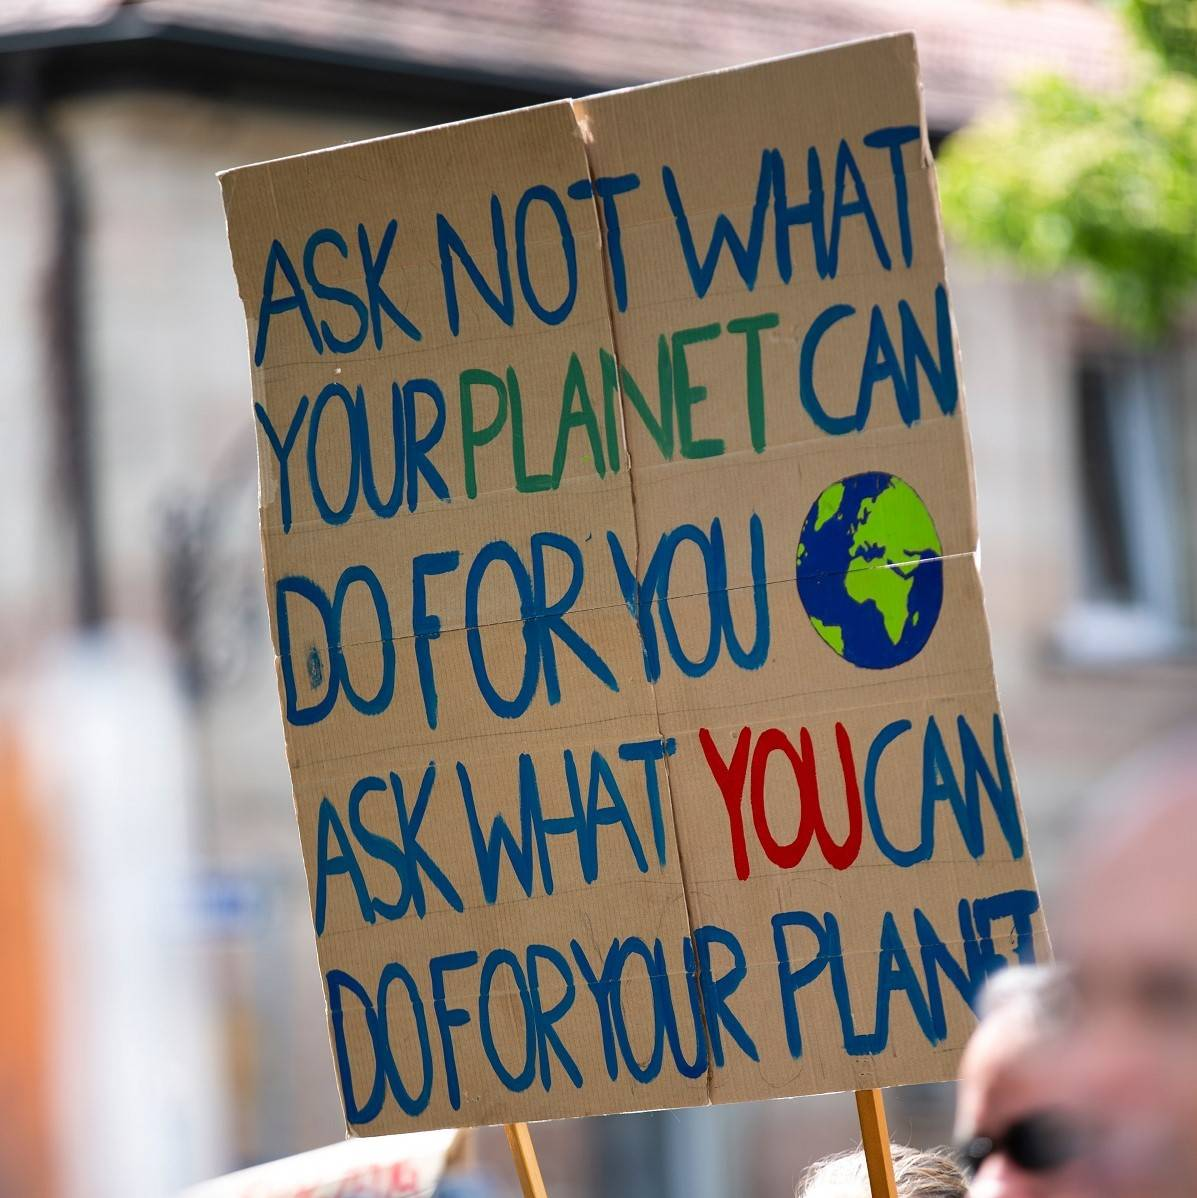 A climate change protest sign